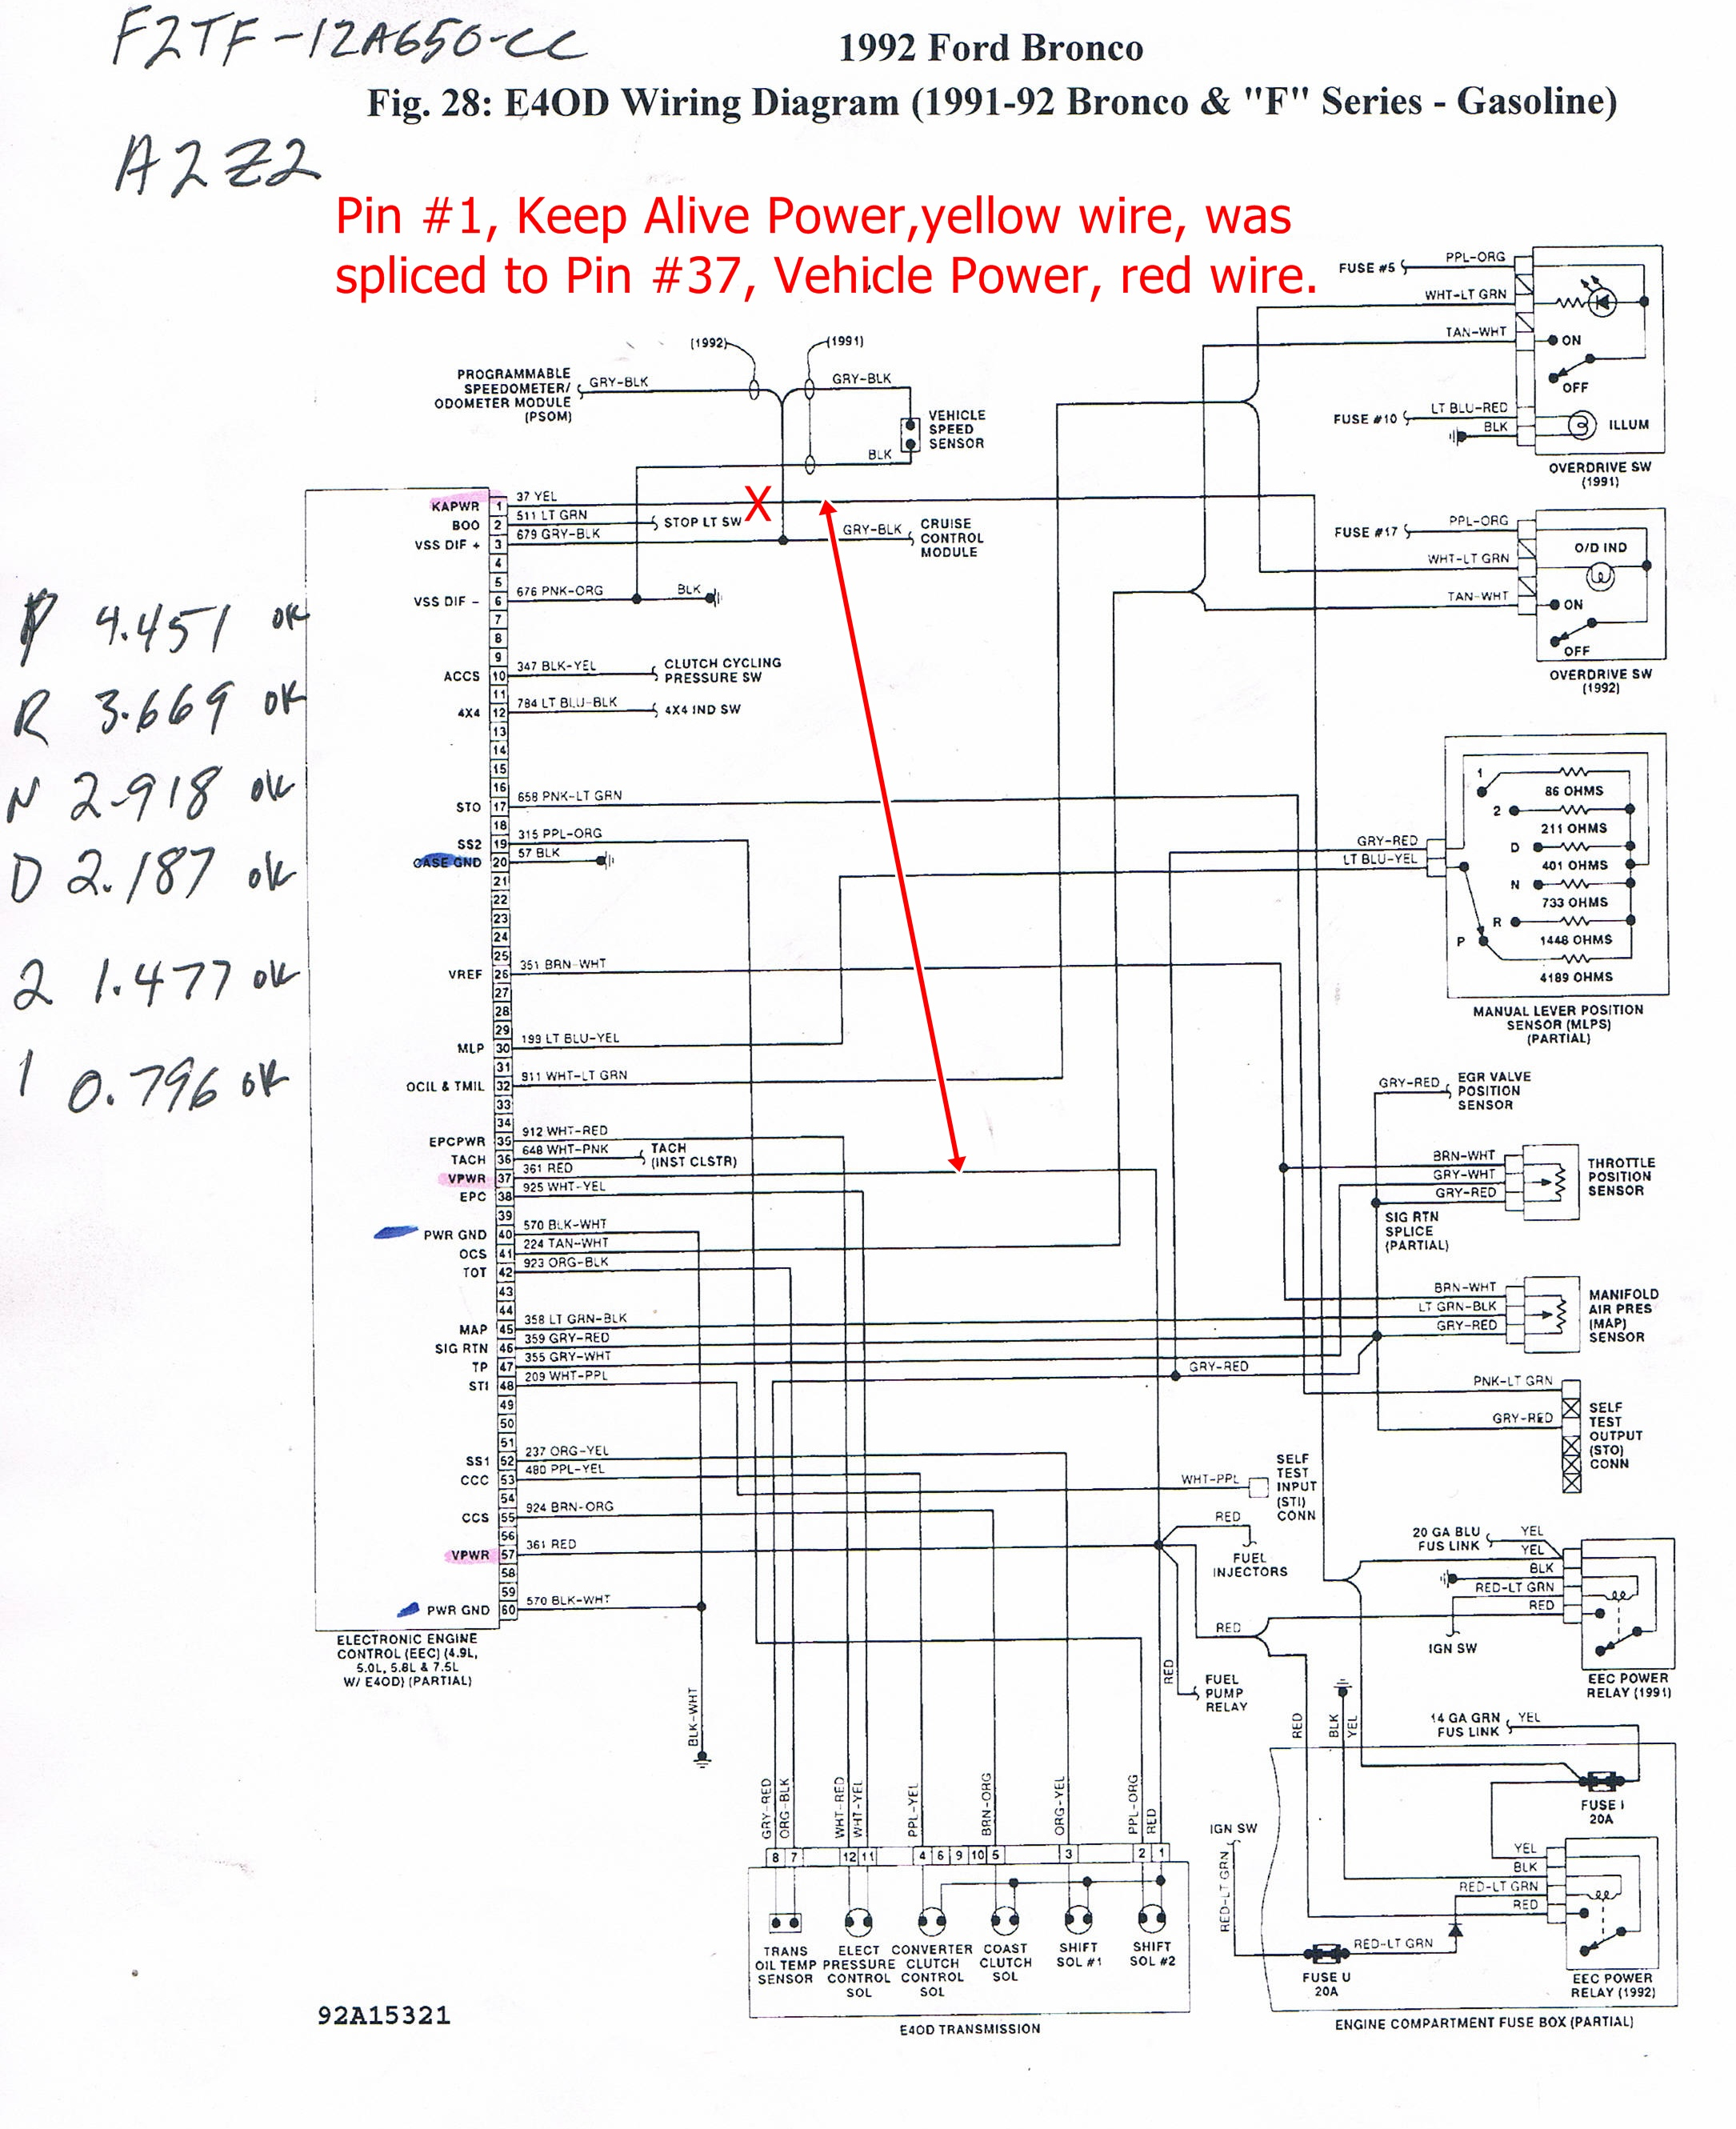 2010 Dodge Grand Caravan Headlight Wiring Diagram For Ignition System 2013 Accord Simple Diagram1996 Honda